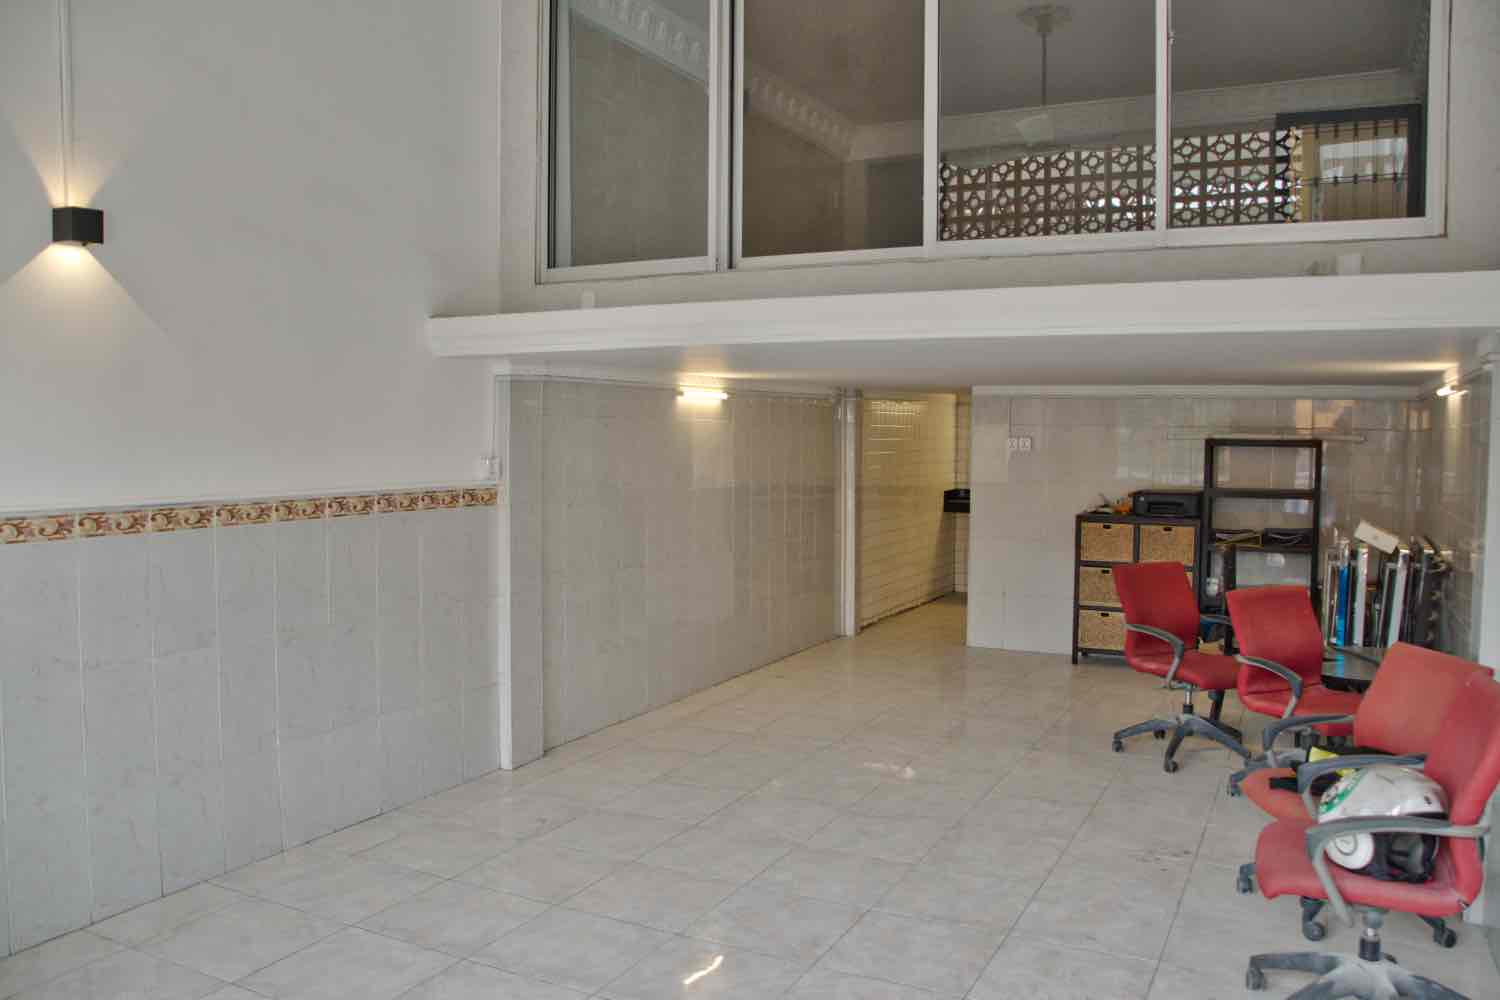 2 bedrooms apartment 110m2 for rent near Independent Monument